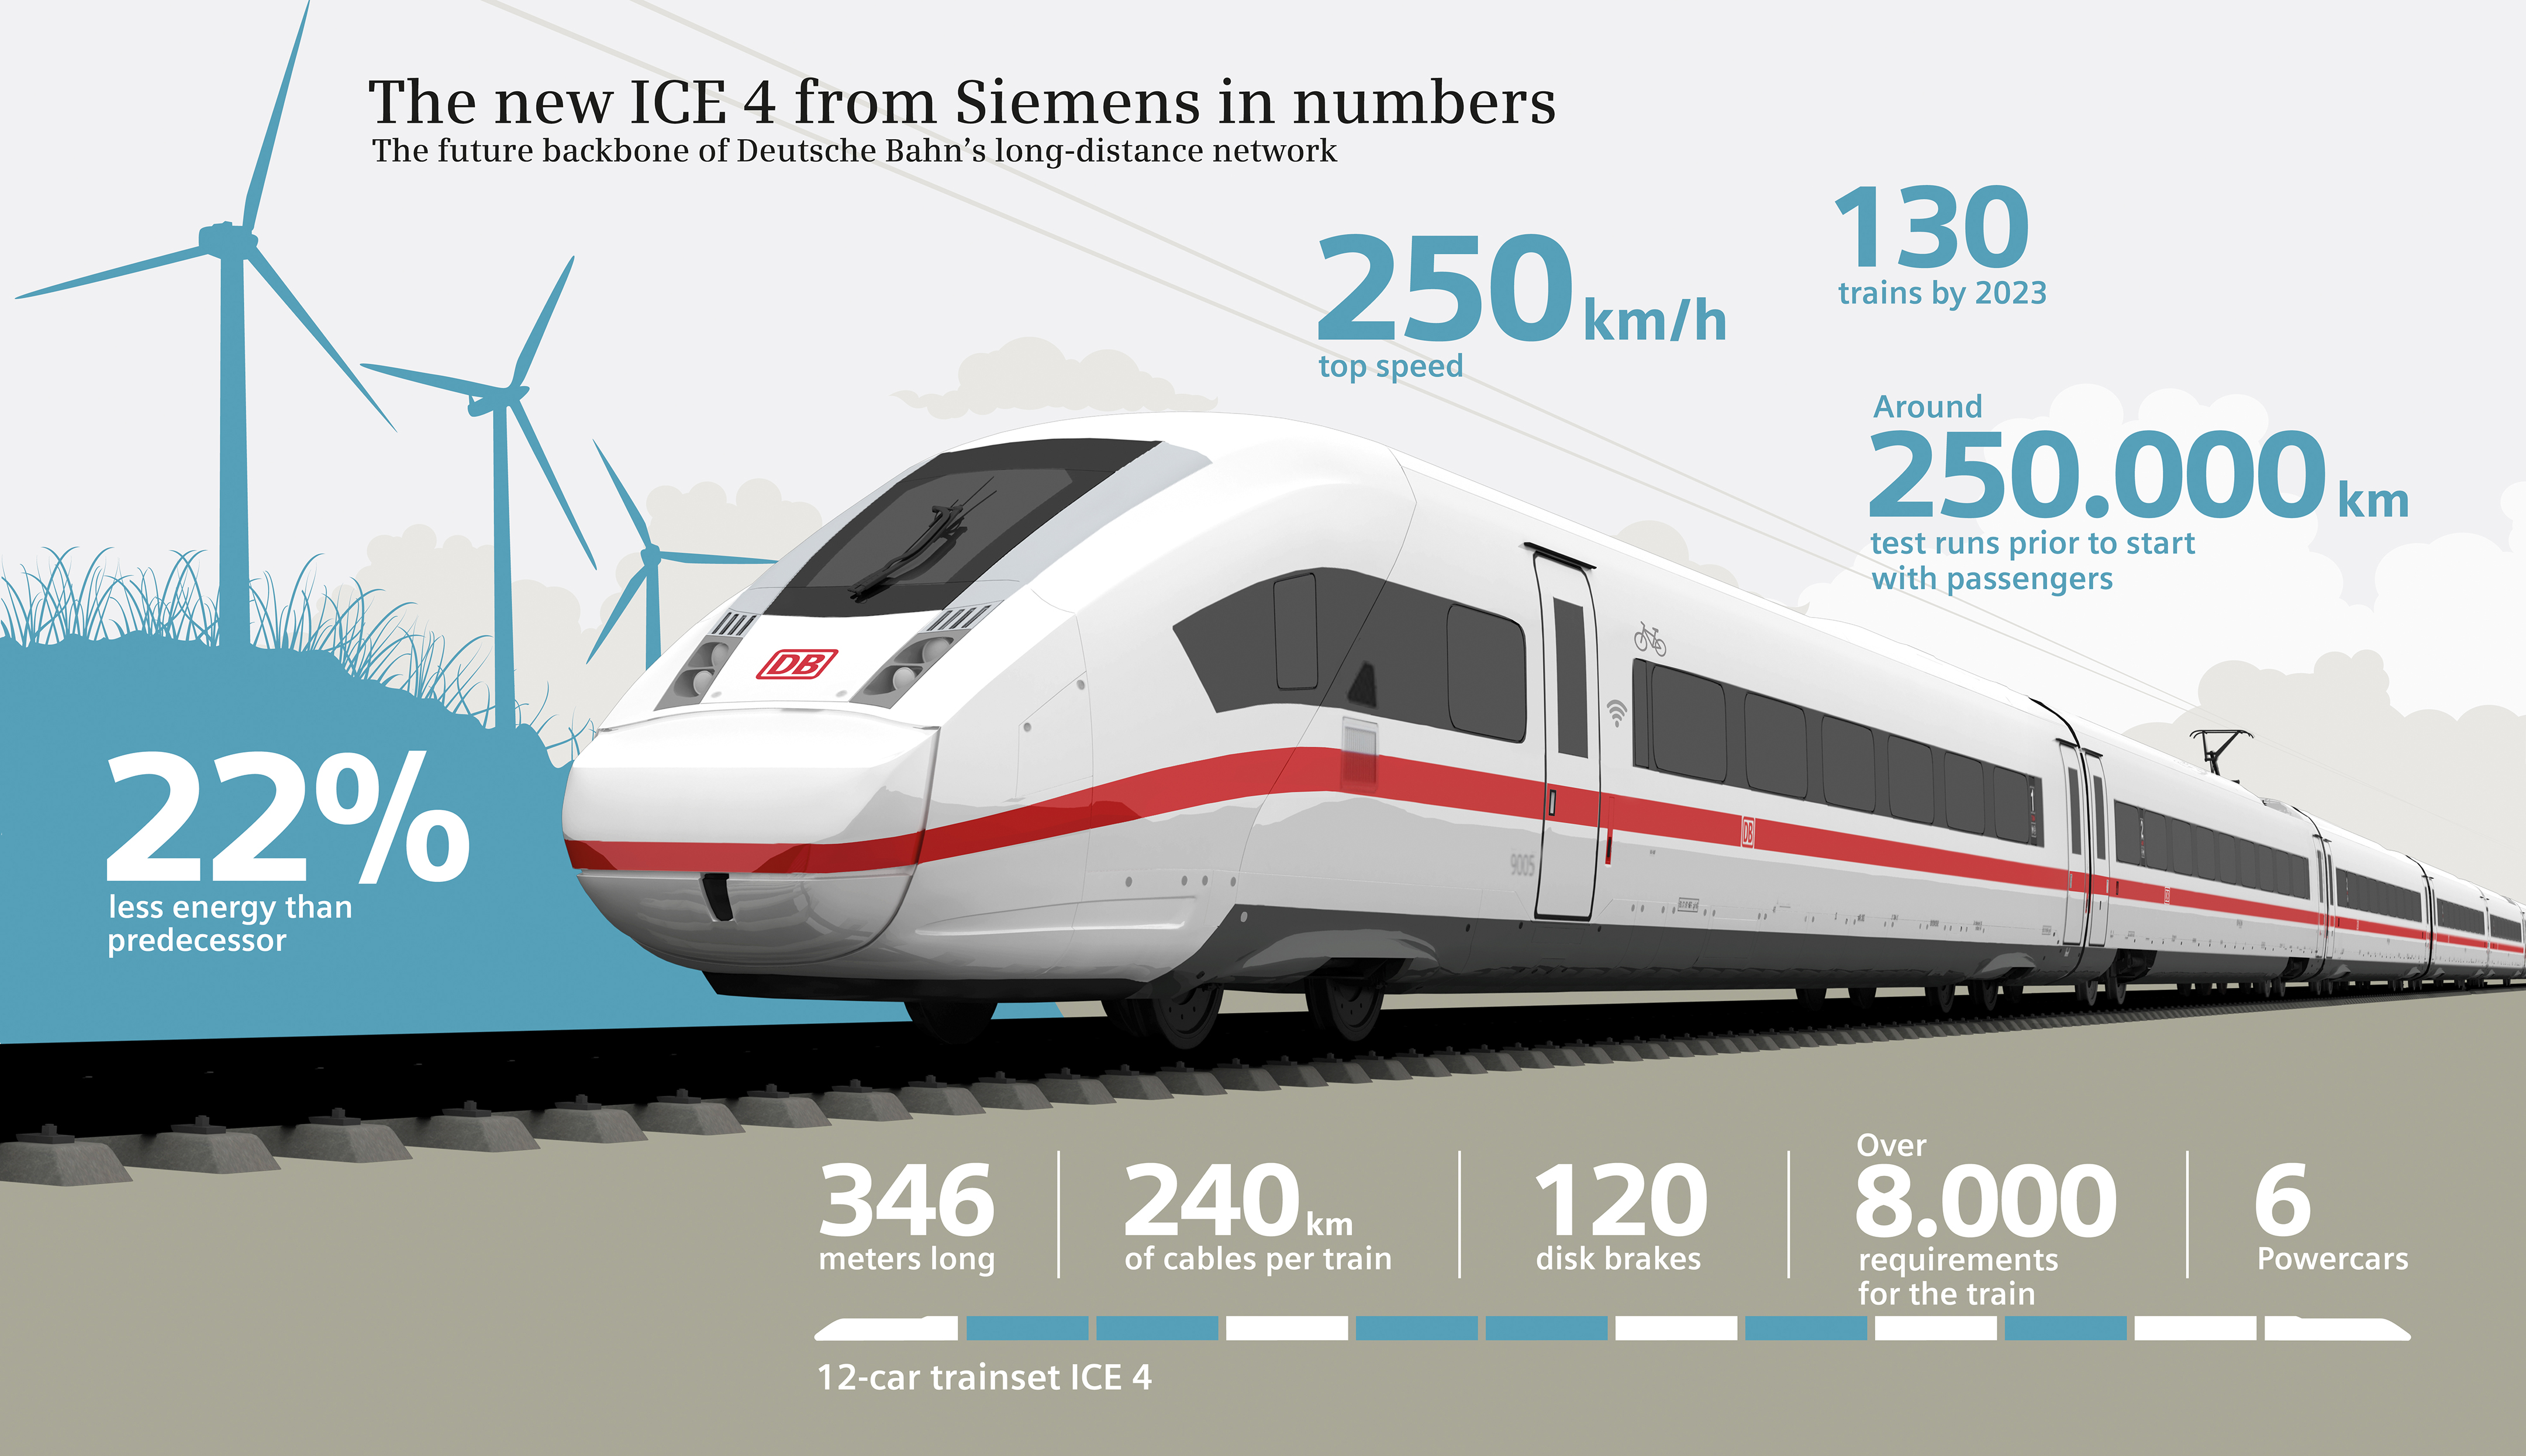 Largest order: Siemens is building ICE 4 trains for Deutsche Bahn